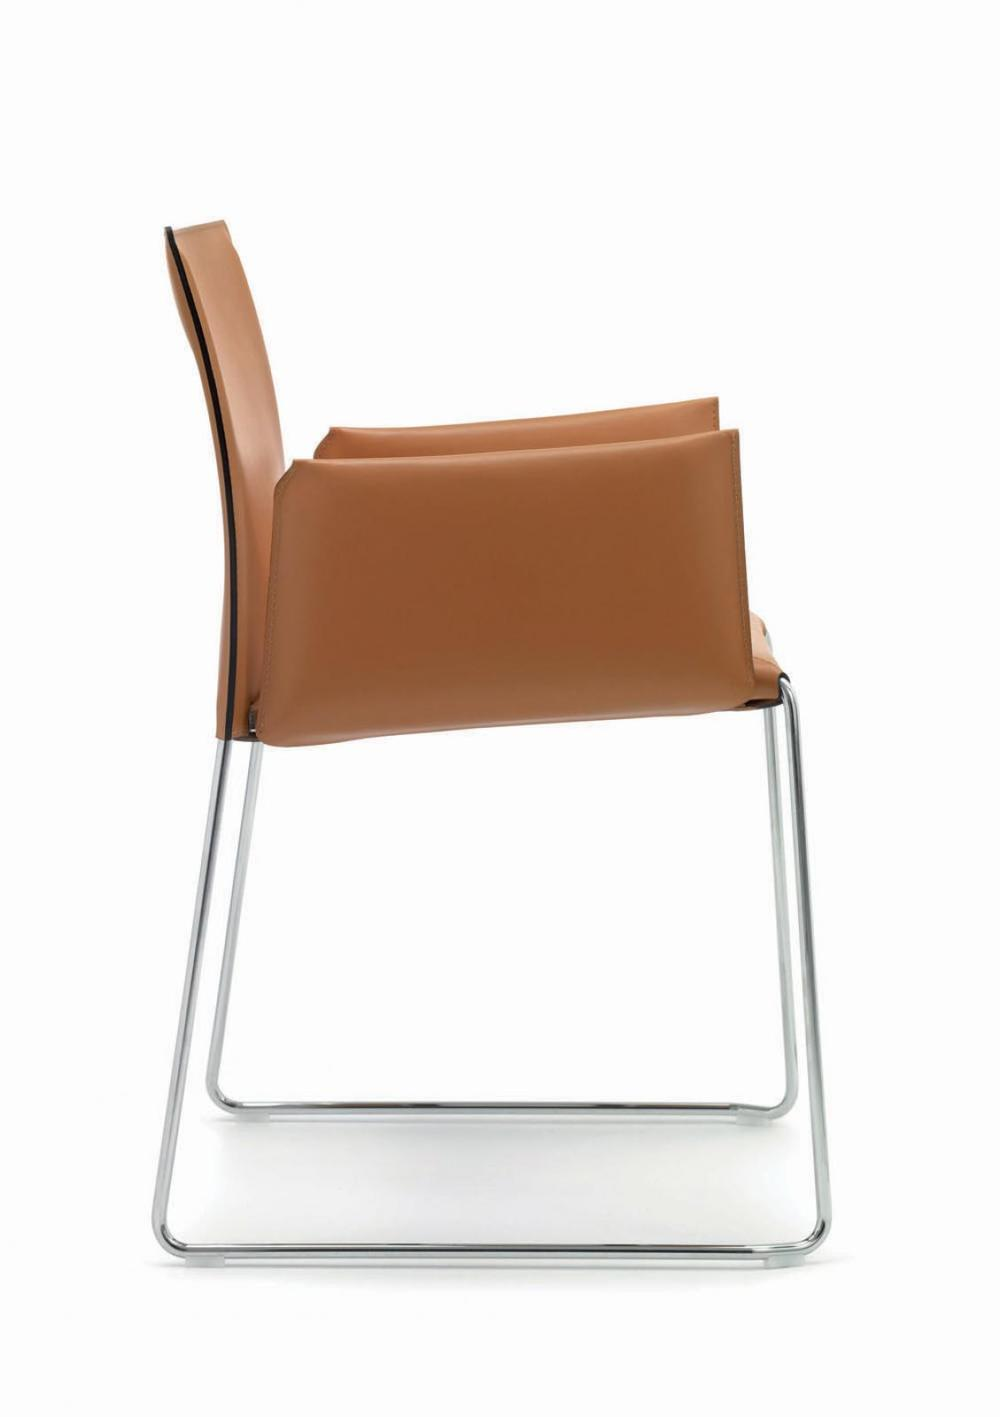 modern-leather-chairs-italian-furniture (10).jpg